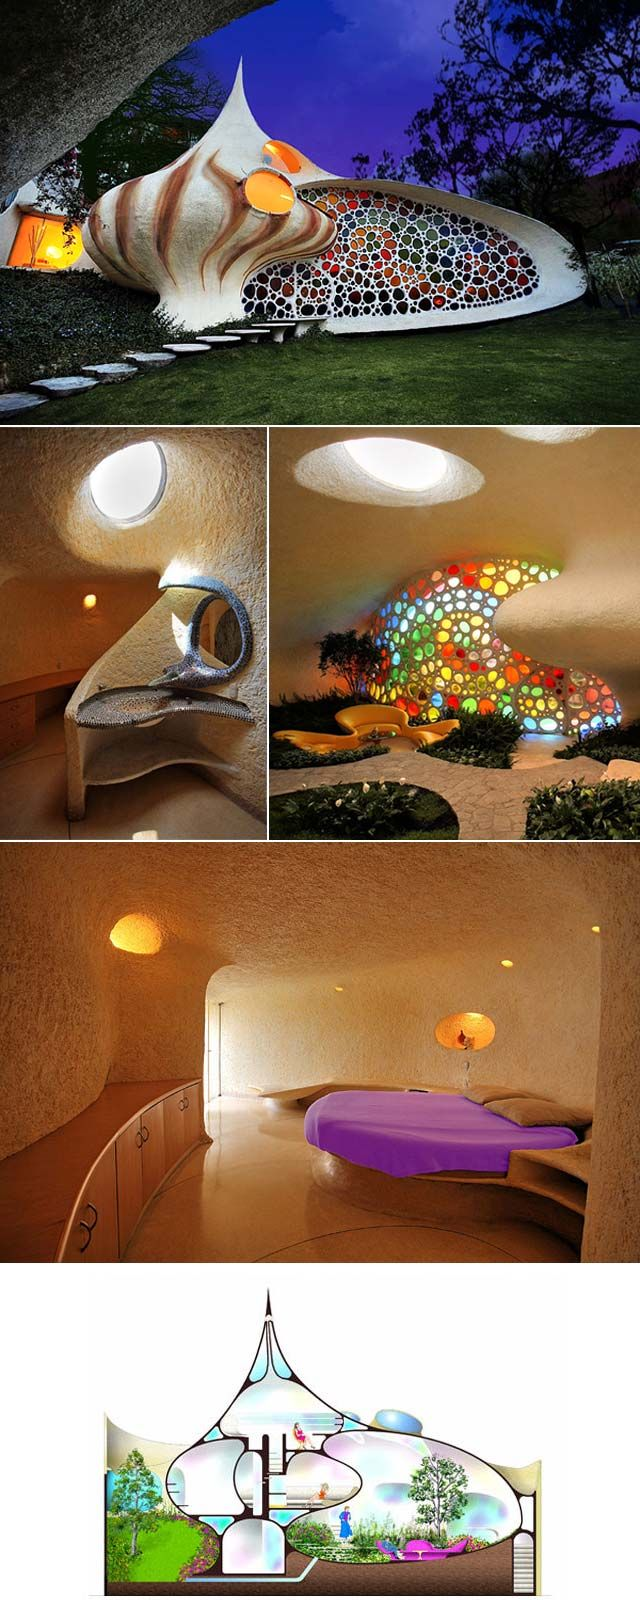 Nautilus House, Mexico City. A group of nature inspired houses, as beautiful and original inside as outside. By architect Javier Senosiain of Arquitectura Orgánica (more: arquitecturaorganica.com)